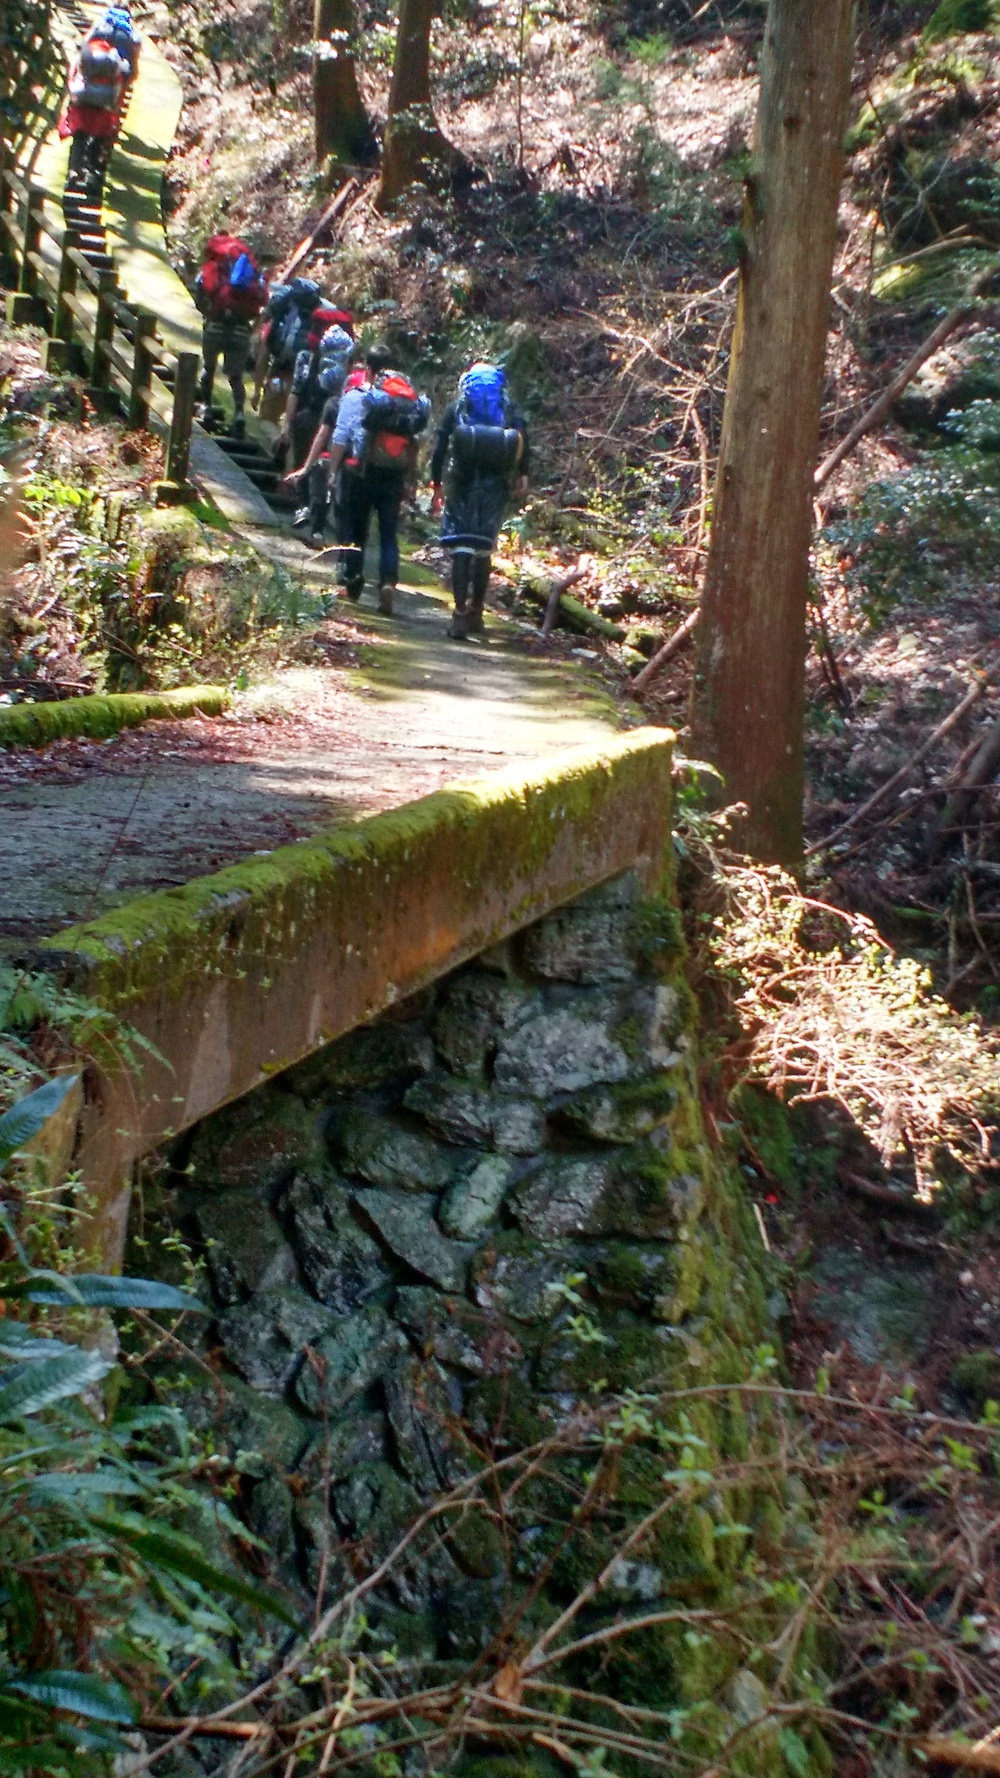 One of the bridges and stone stepped paths on the way up to the falls.